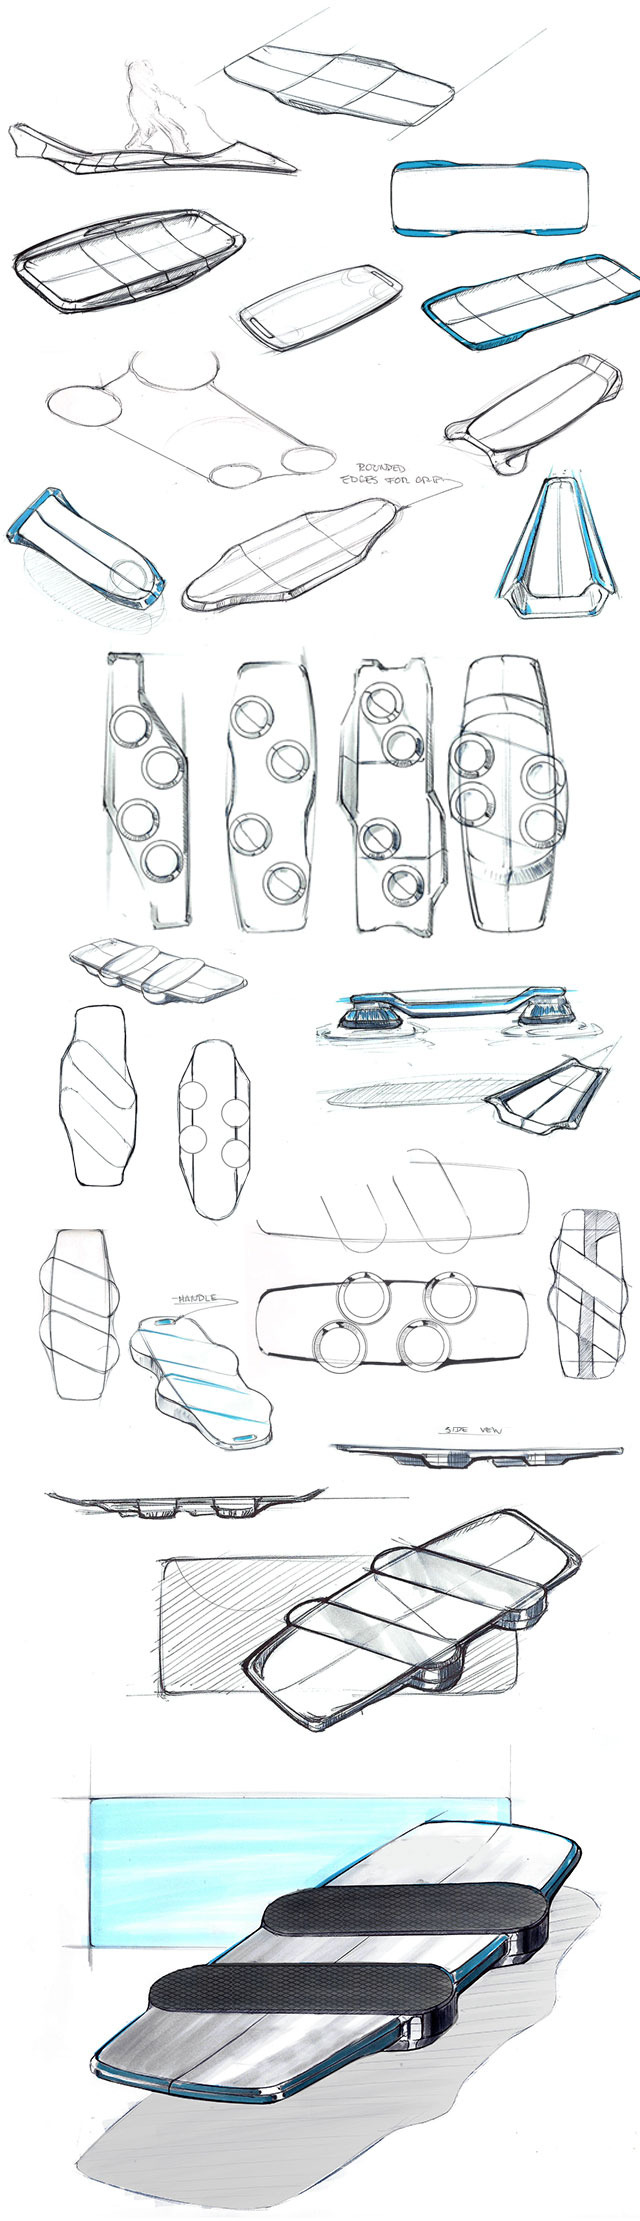 Hoverboard Plans Hendo Hoverboards Worlds First Real Hoverboard Epic Geekdom